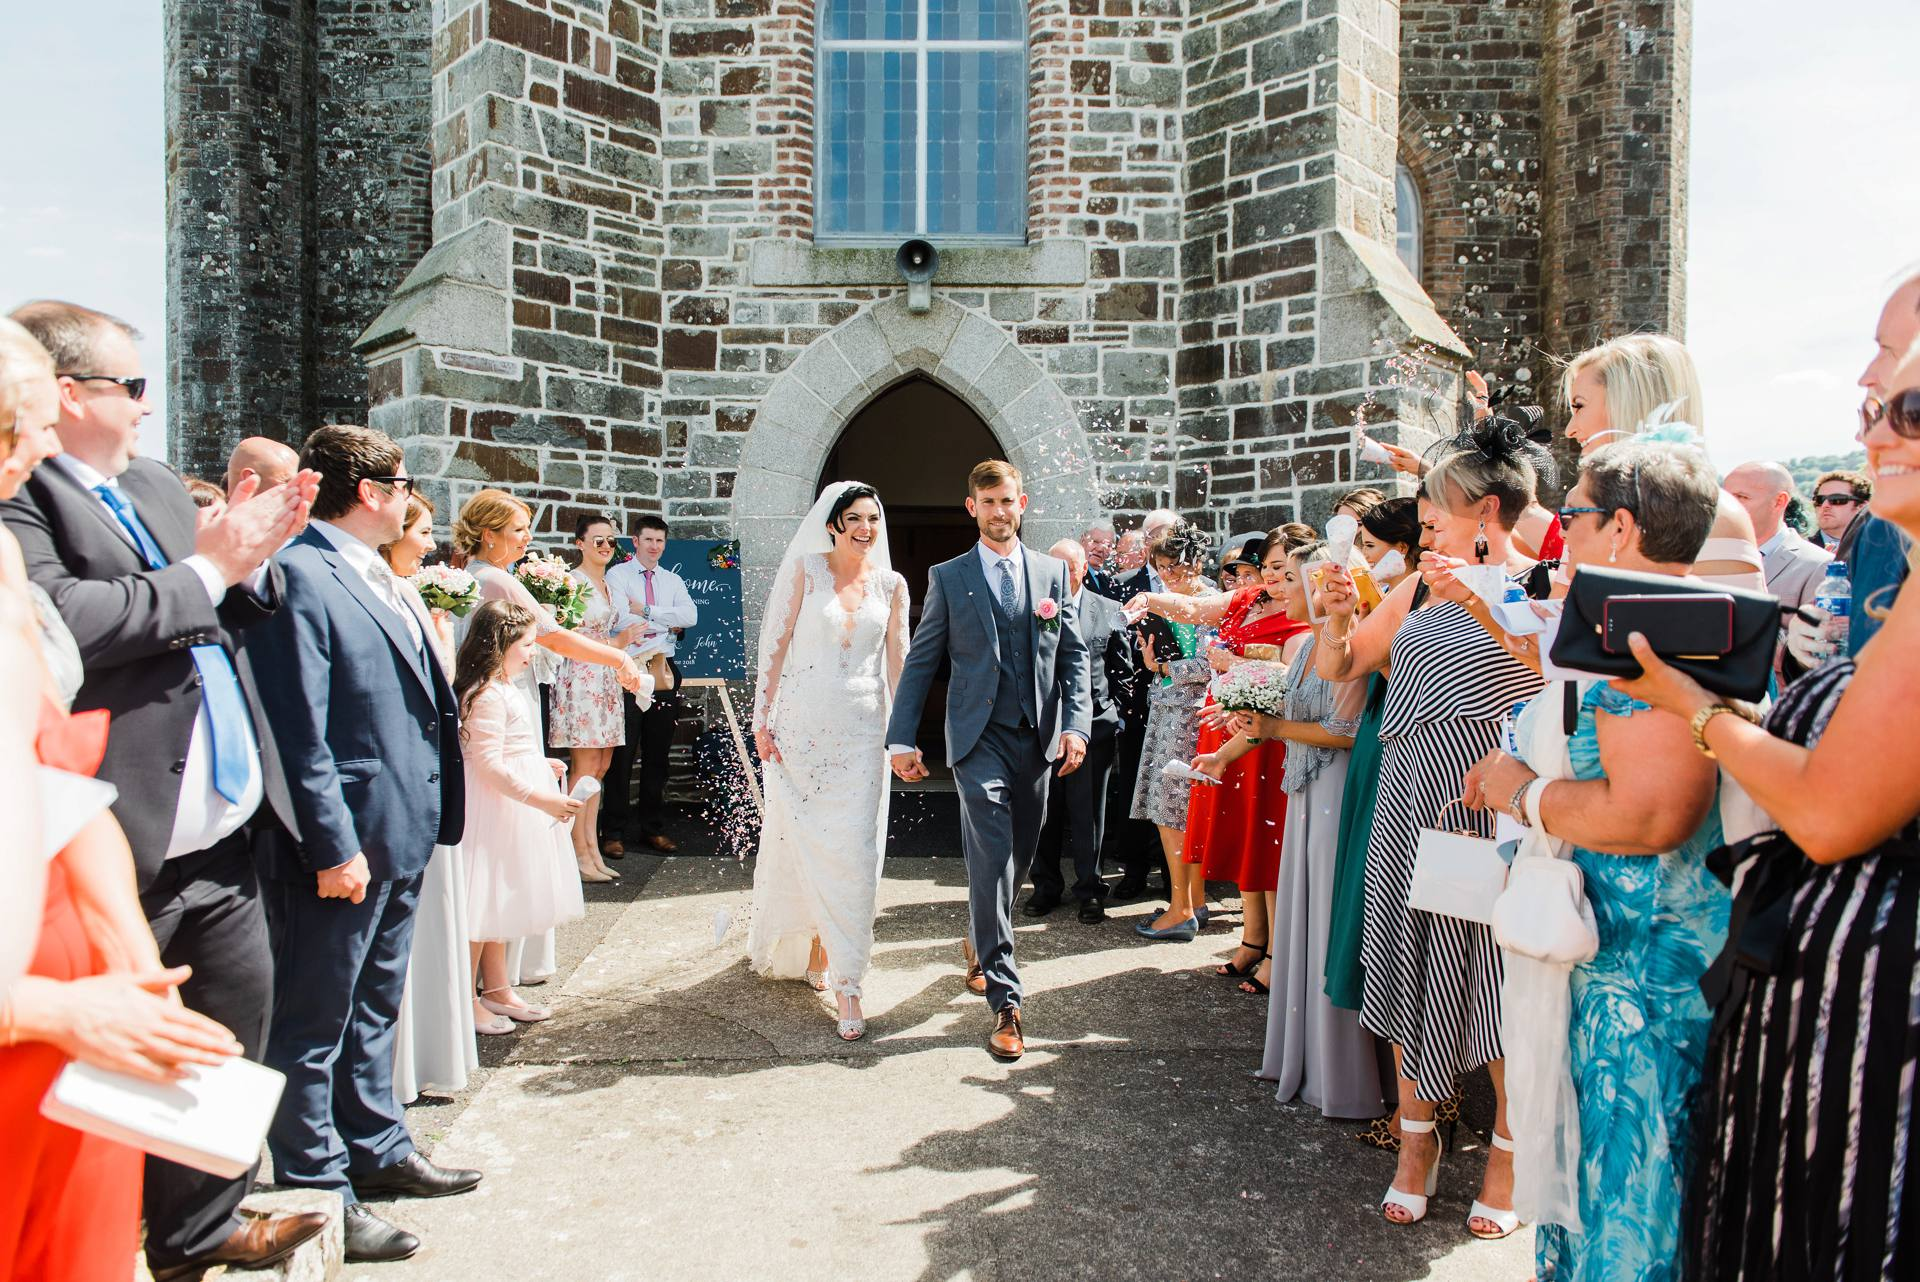 Bride and groom leaving church with confetti being thrown